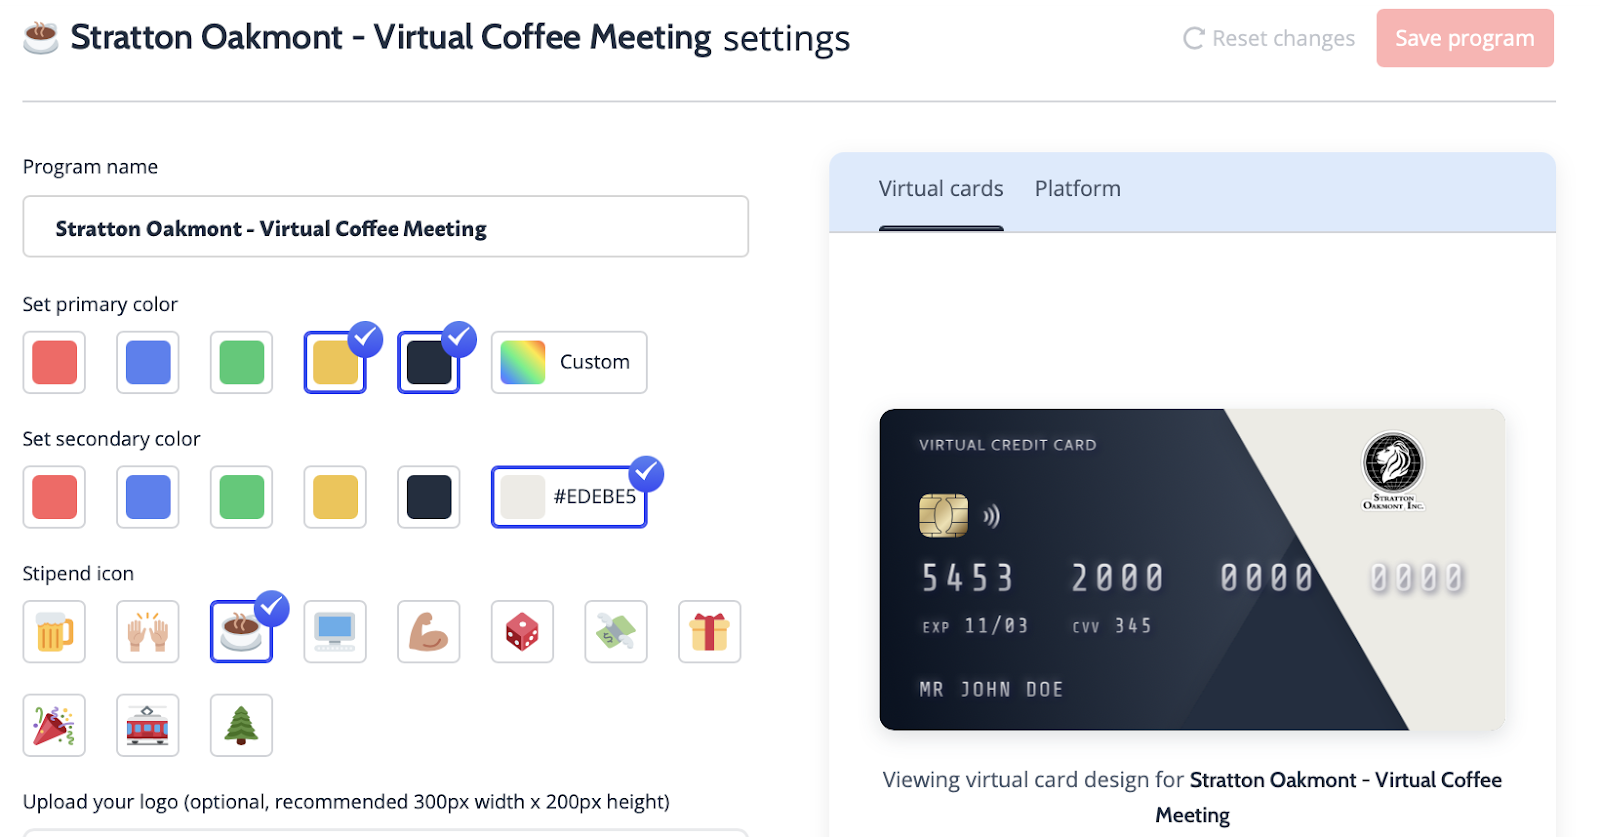 A virtual credit card to buy guests coffee at a virtual coffee meeting